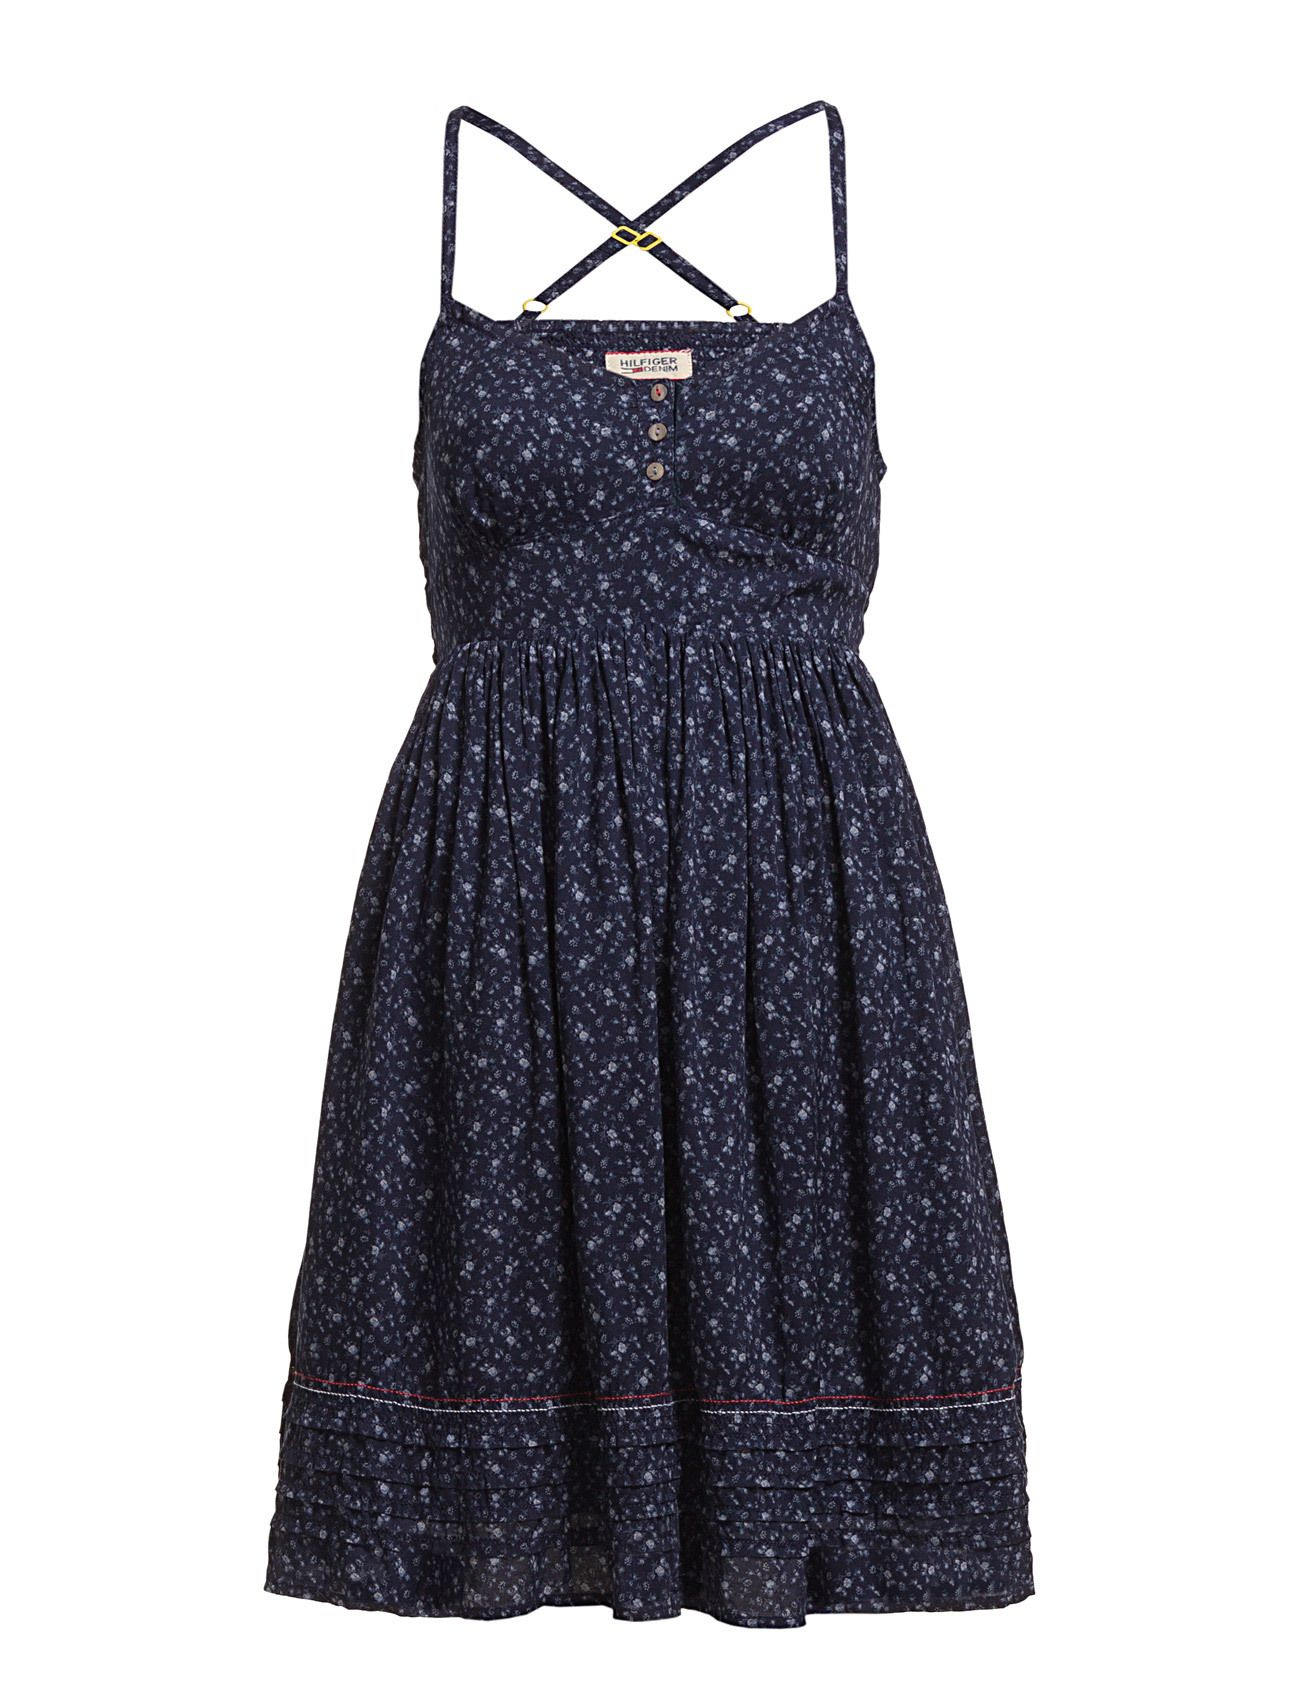 Hilfiger Denim Florence dress n/s piper